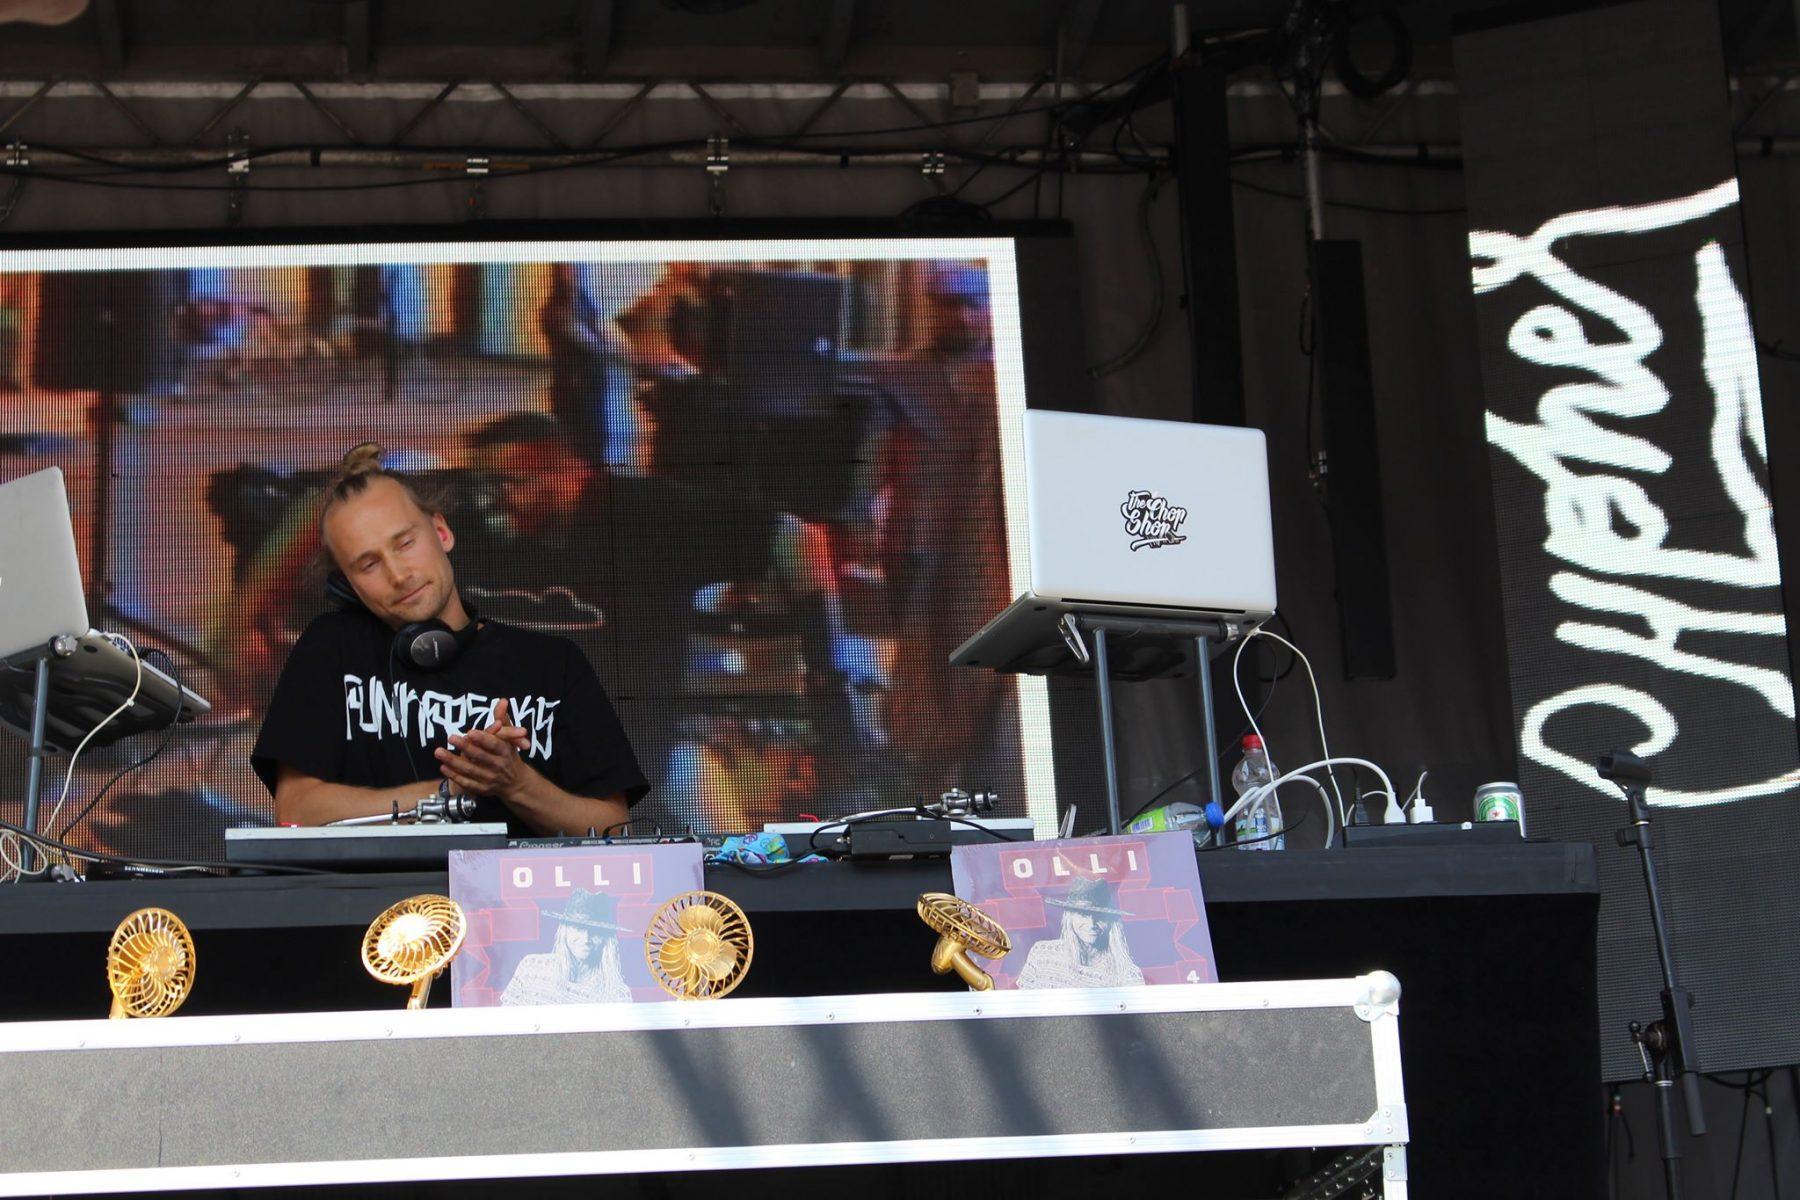 mural-festival-dj-montreal-stage